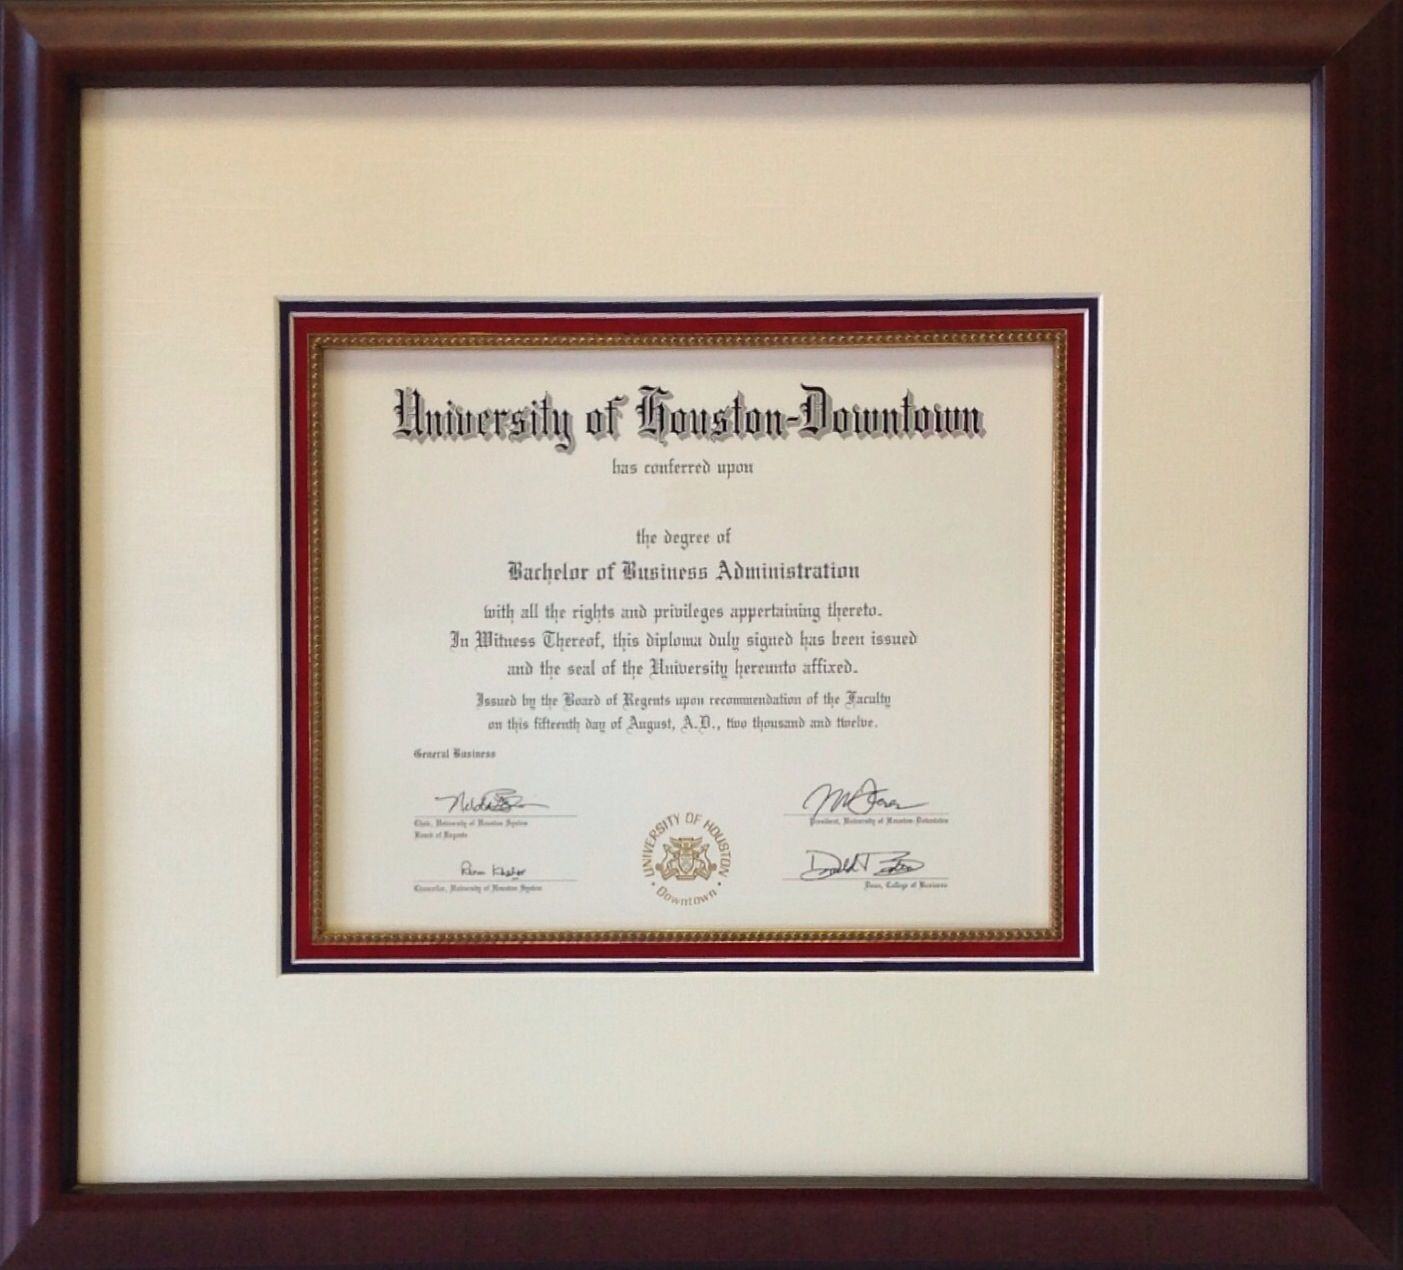 University of houston downtown framing of degrees diplomas and explore university of houston downtown and more aiddatafo Image collections